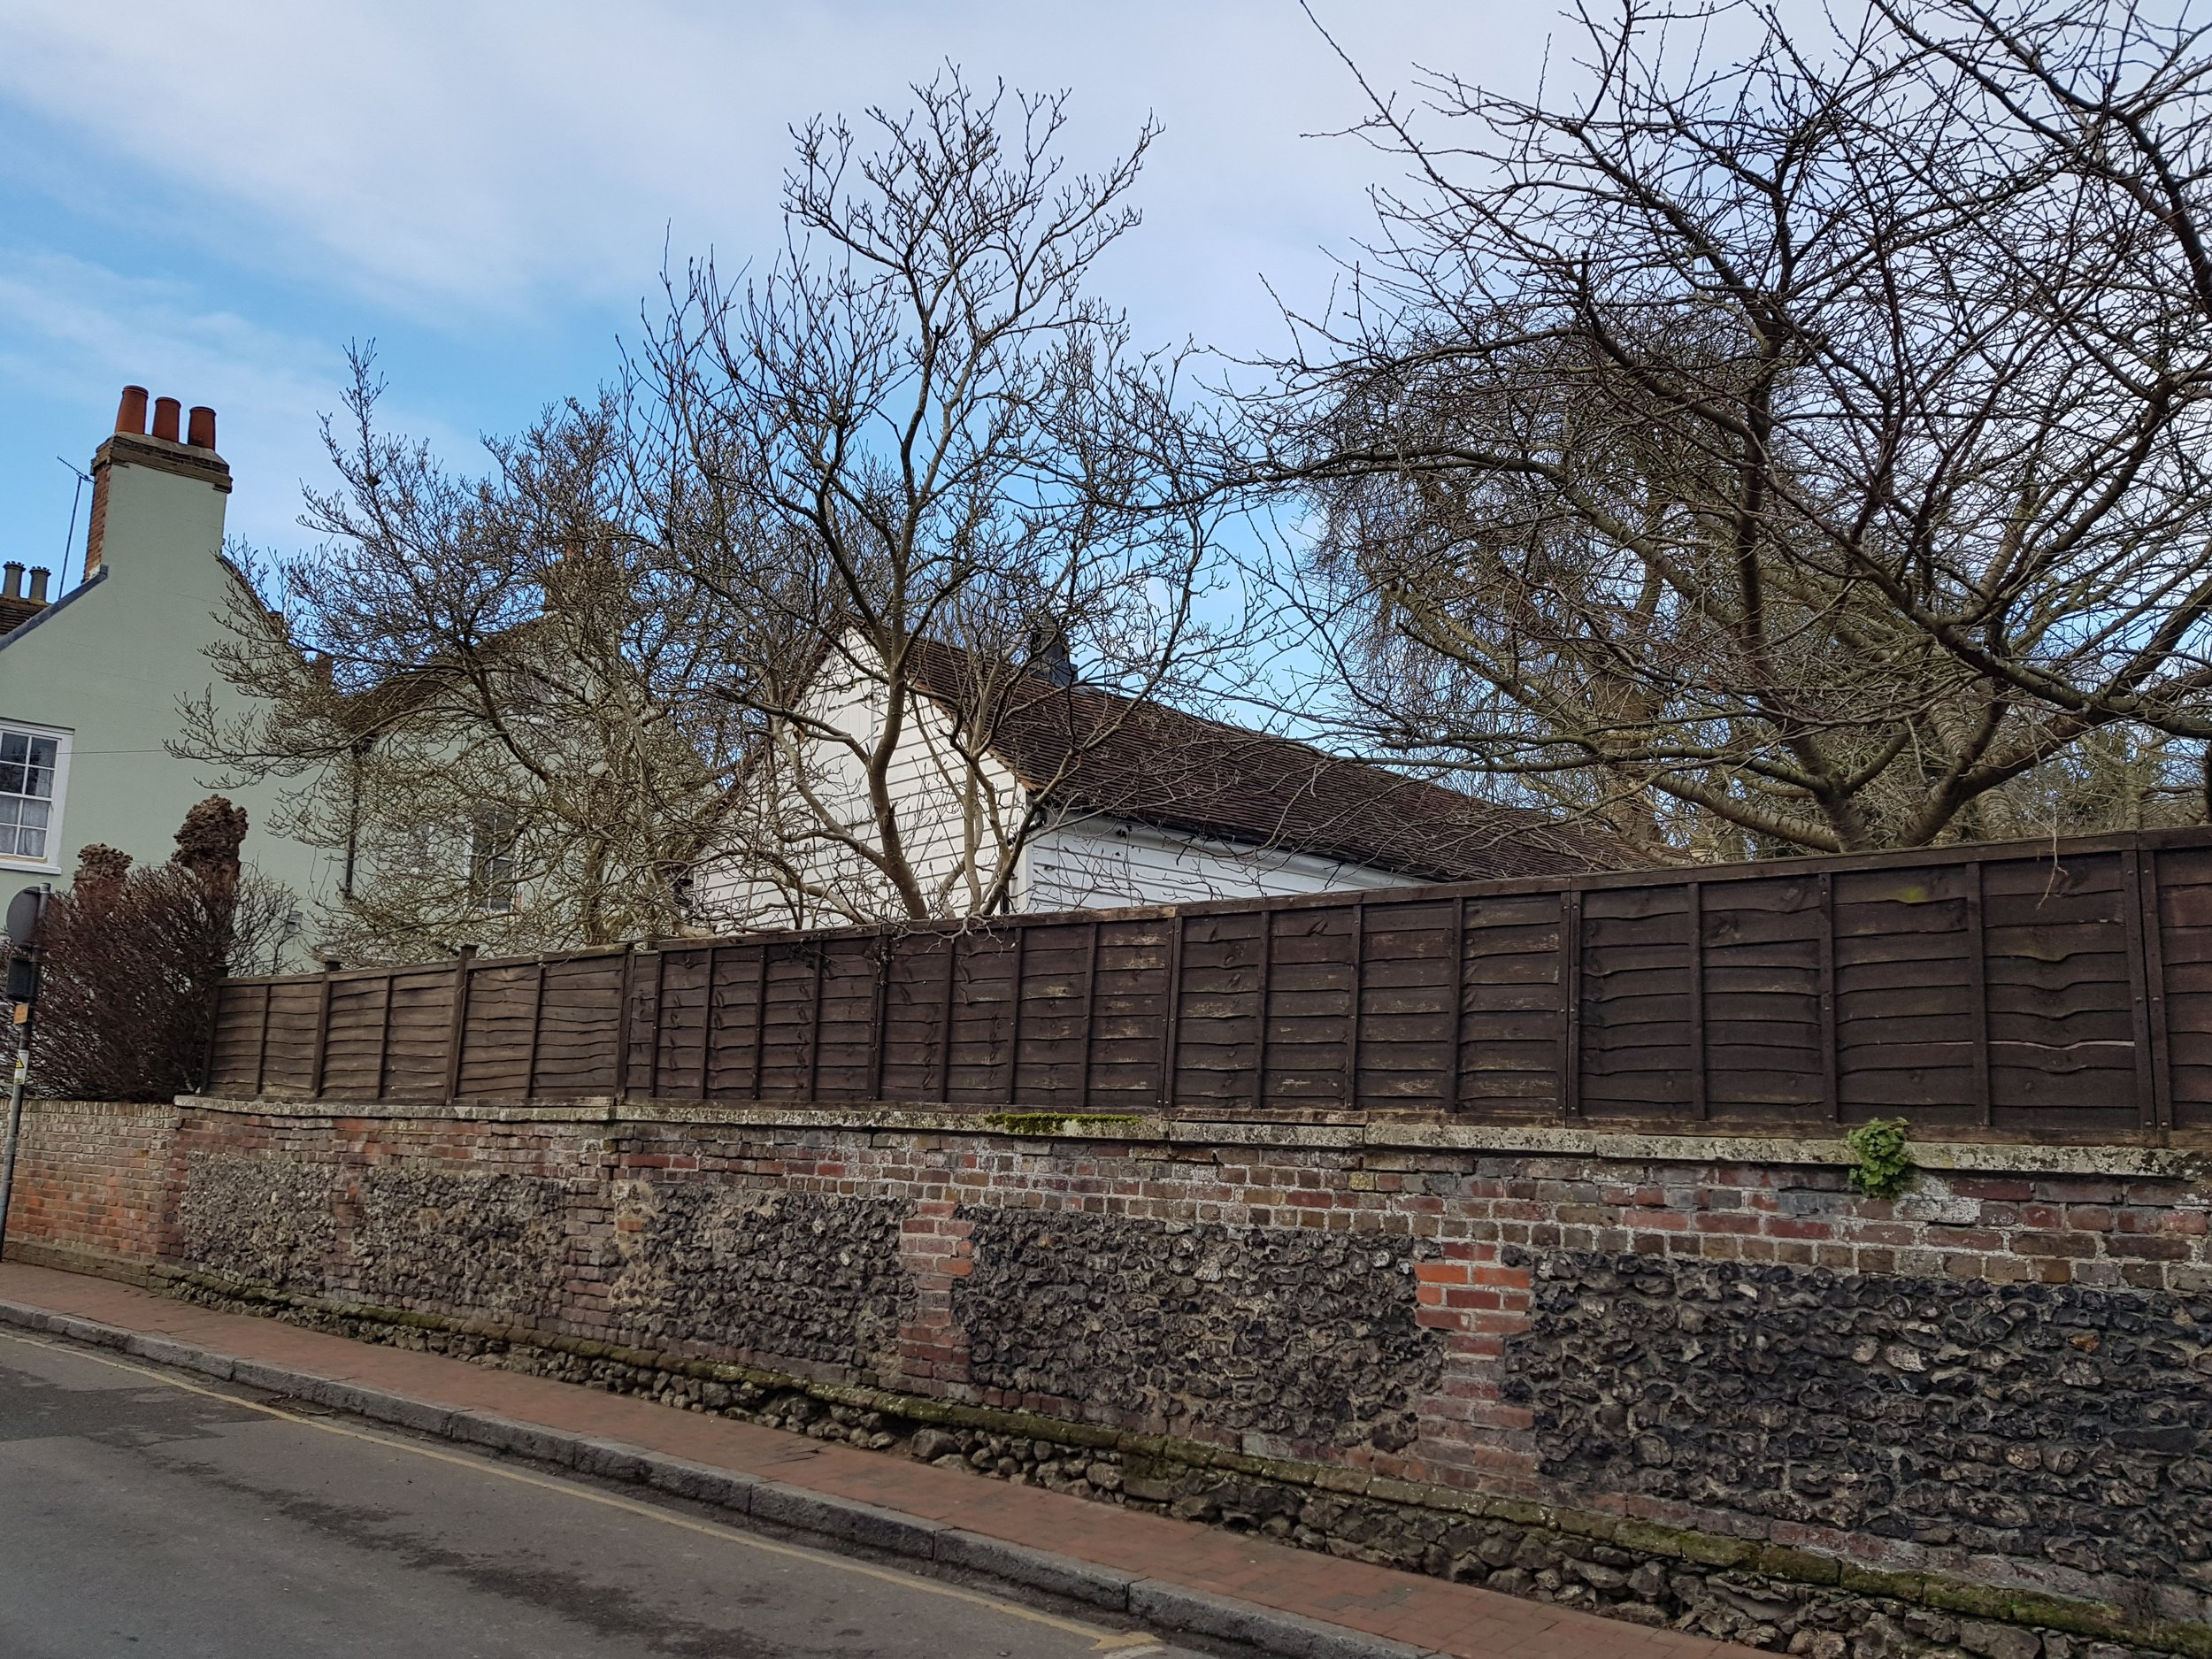 Gable ends form a rhythm along the road frontage. -